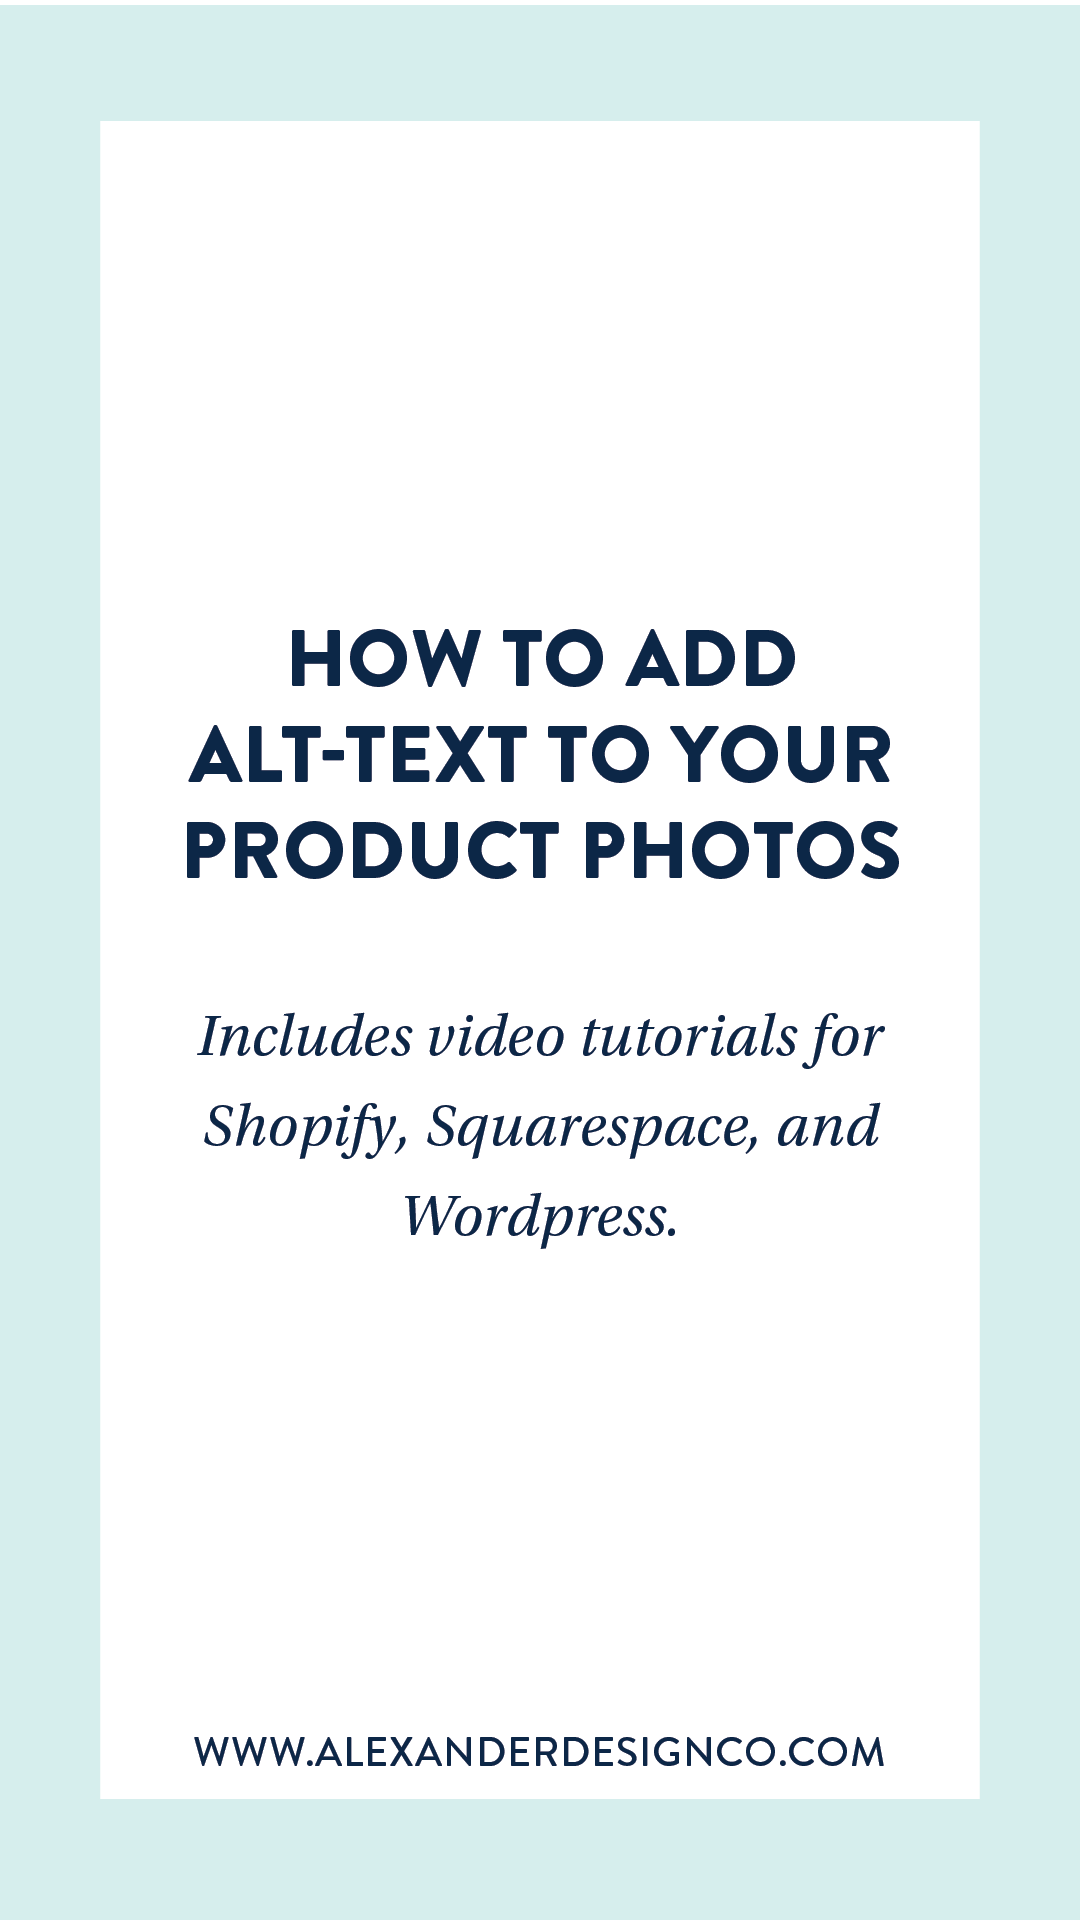 How to add Alt-text to your product photos on Shopify, Squarespace, and Wordpress.